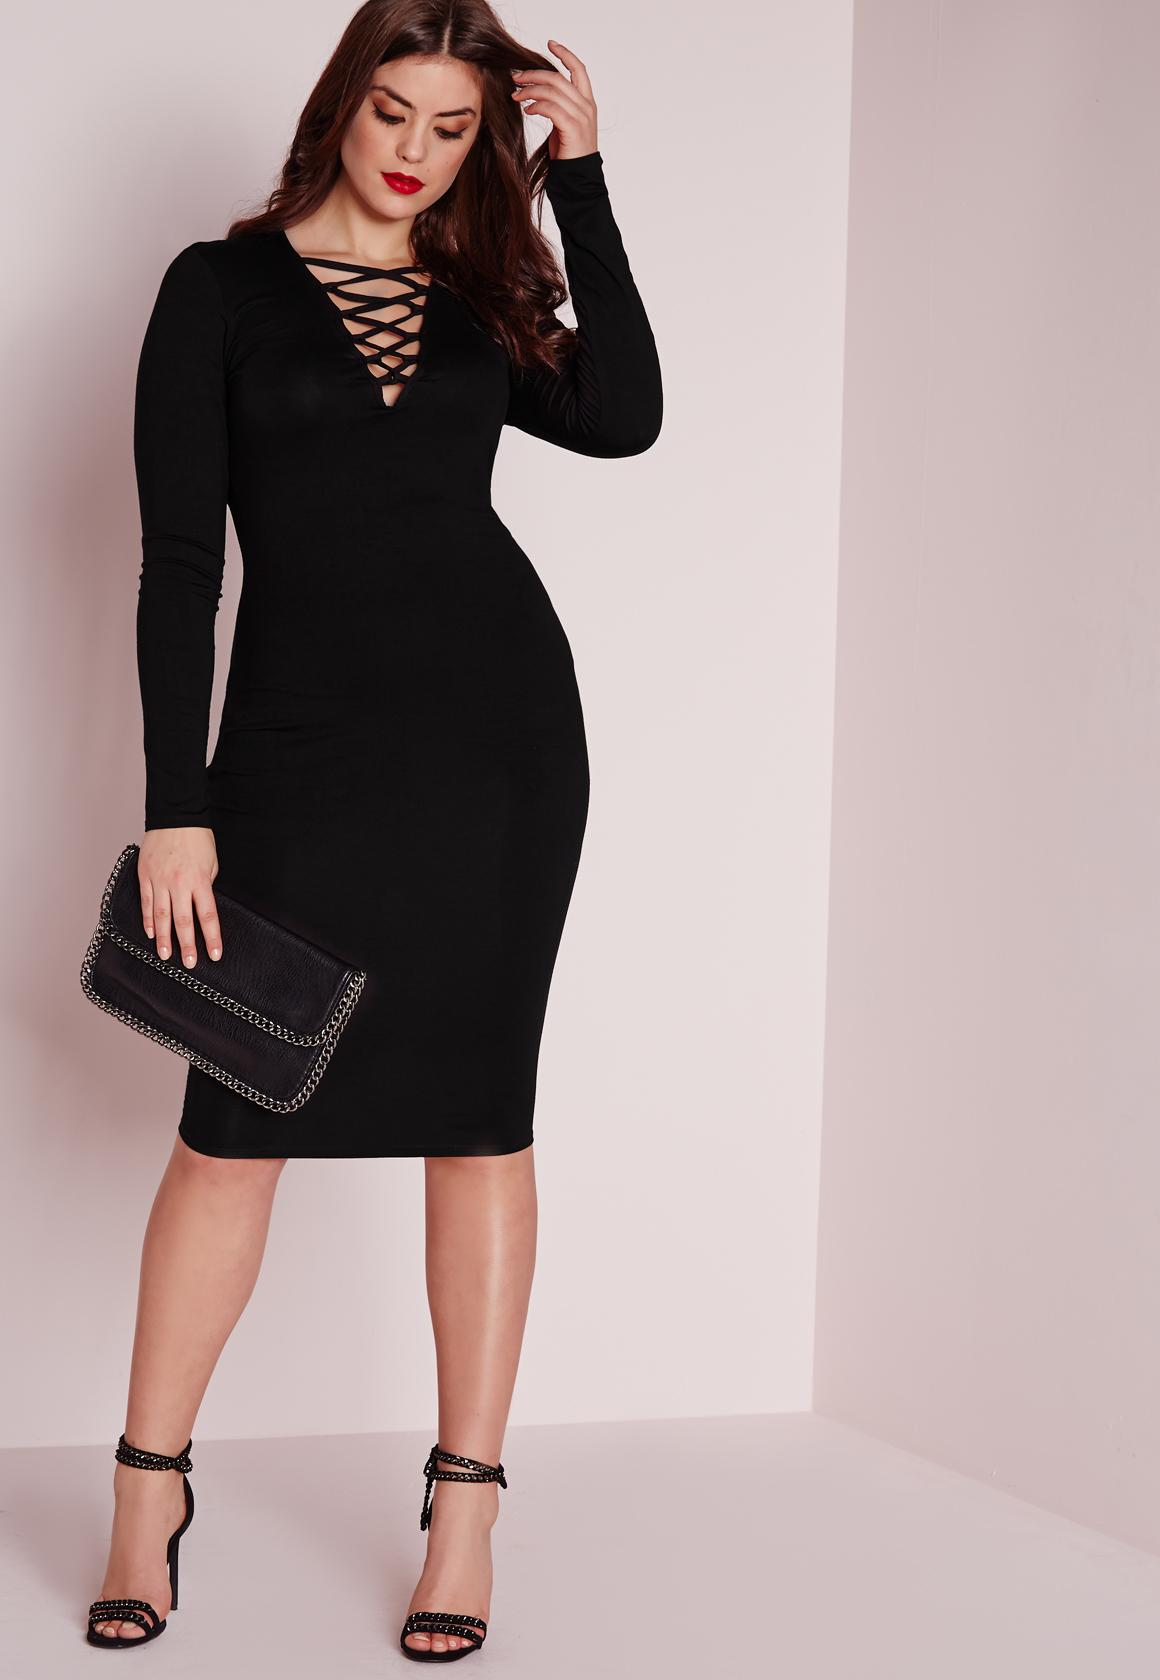 Plus Size Lace Up Dress Black | Missguided